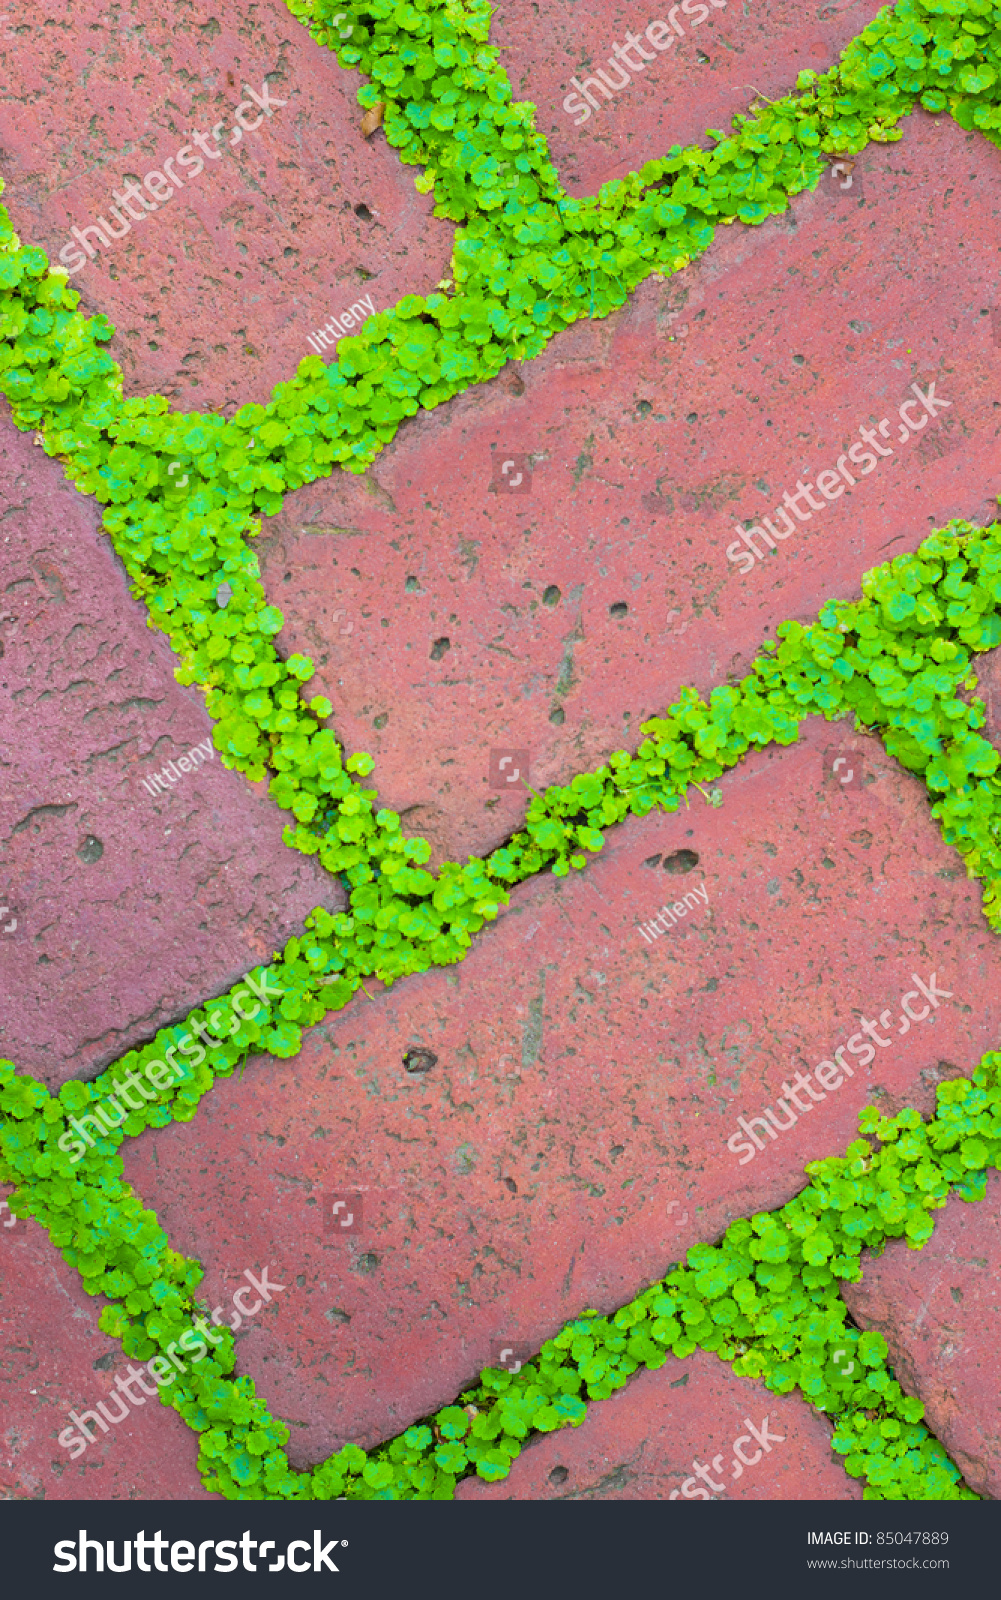 How to plant ground cover between pavers - Detailed Closeup Of Brick Garden Pavers With Green Ground Cover Growing Between